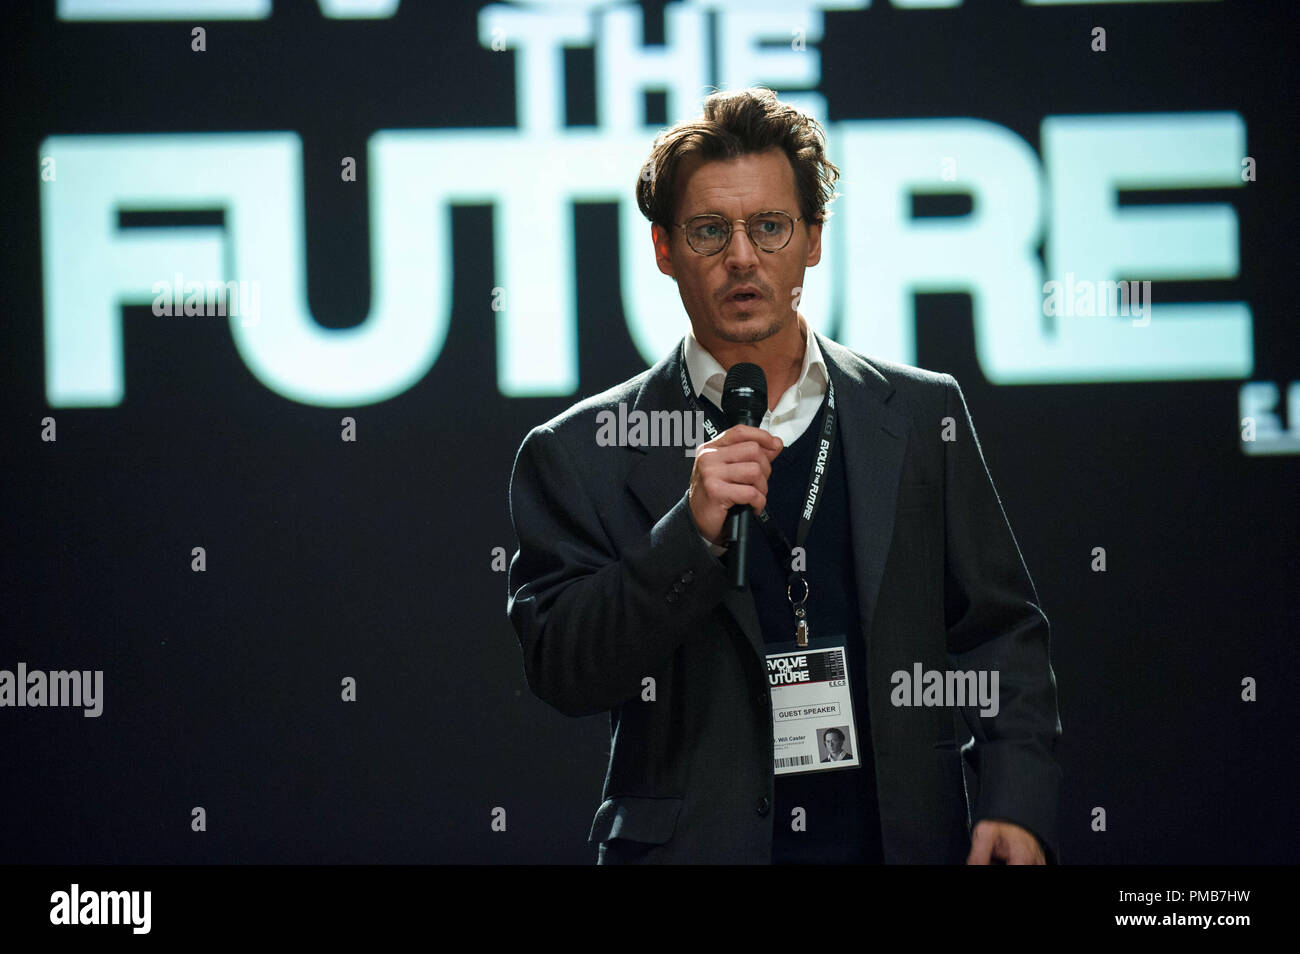 """JOHNNY DEPP as Will Caster in Alcon Entertainment's sci-fi thriller """"TRANSCENDENCE,"""" a Warner Bros. Pictures release. Stock Photo"""